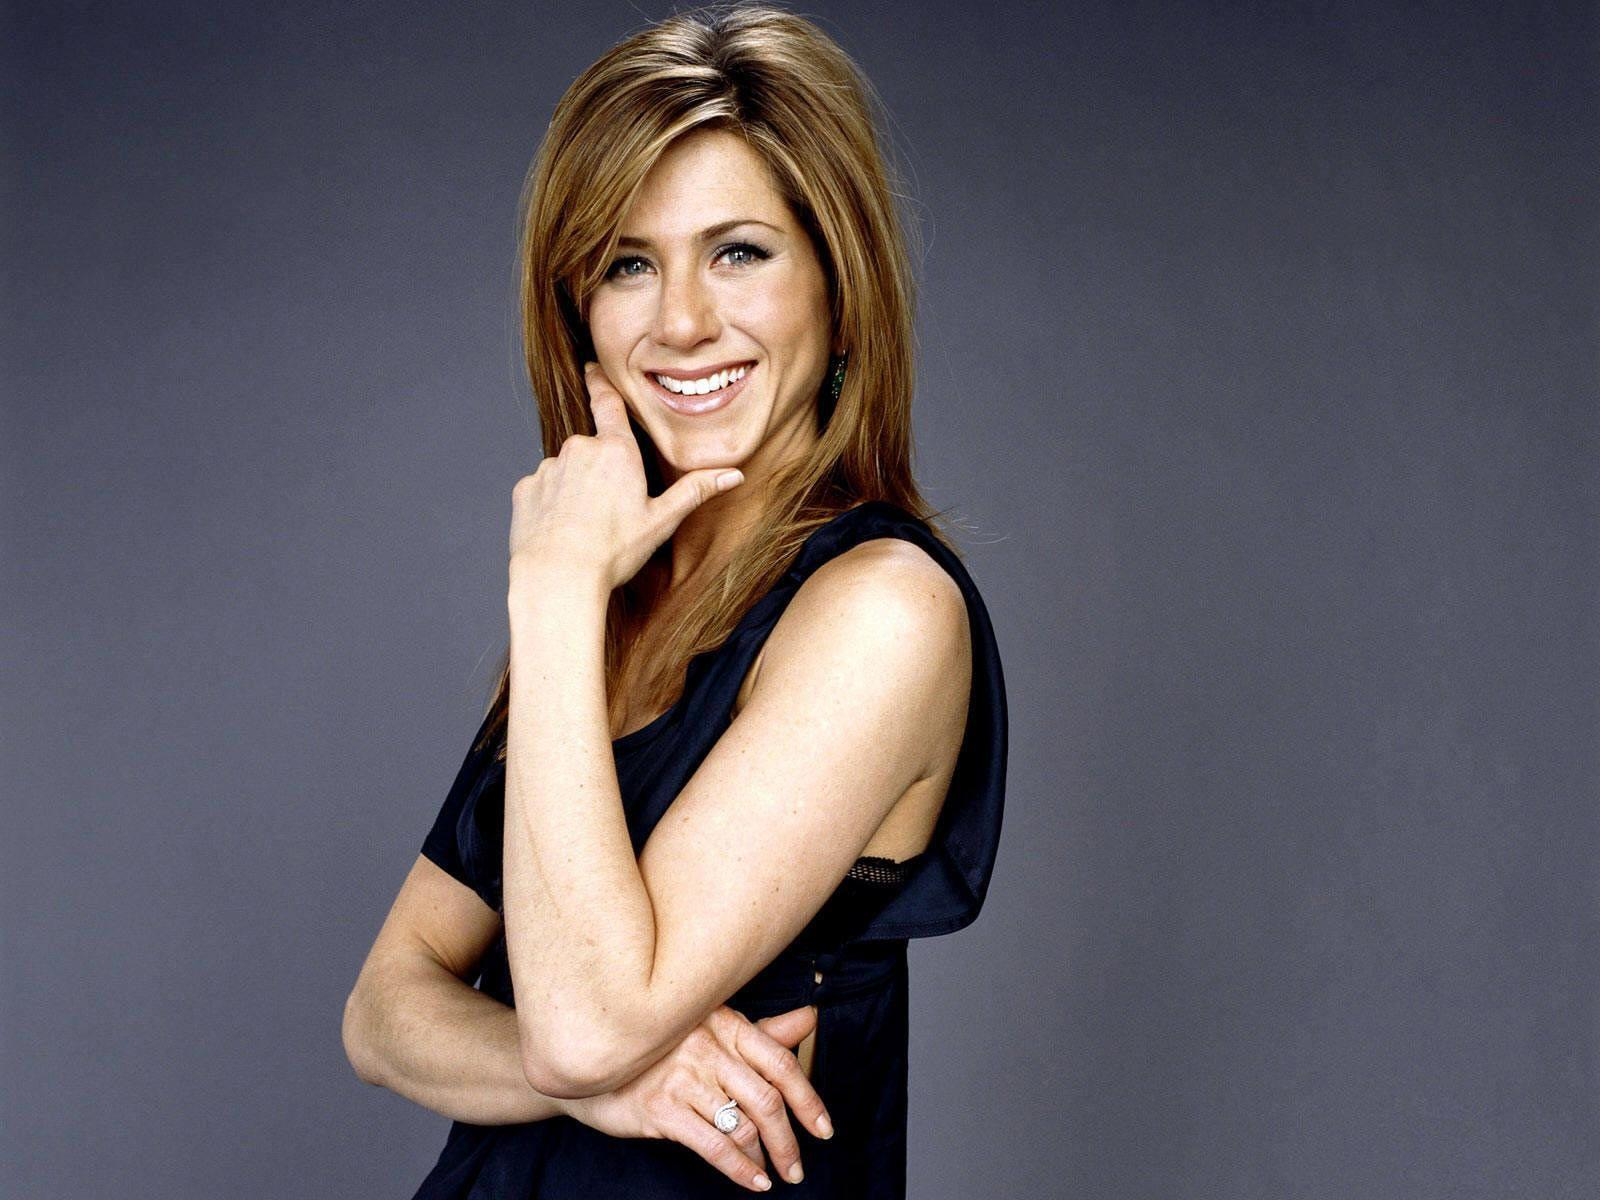 HDQ Cover Jennifer Aniston Wallpapers for Free, Pictures